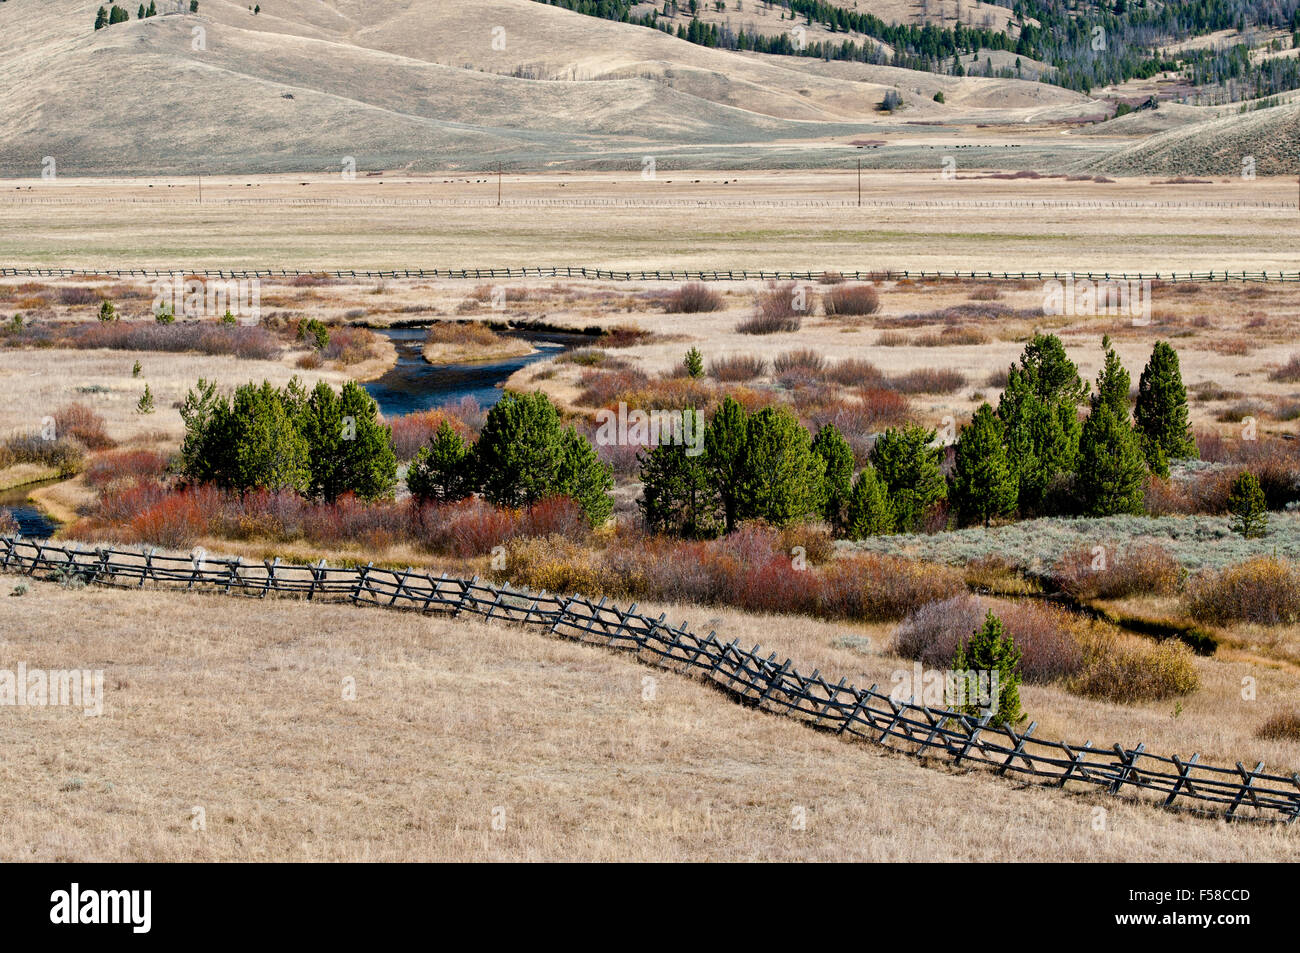 Valley Creek in the Sawtooth National Recreation Area, Idaho, fenced to protect and enhance riparian habitat. - Stock Image